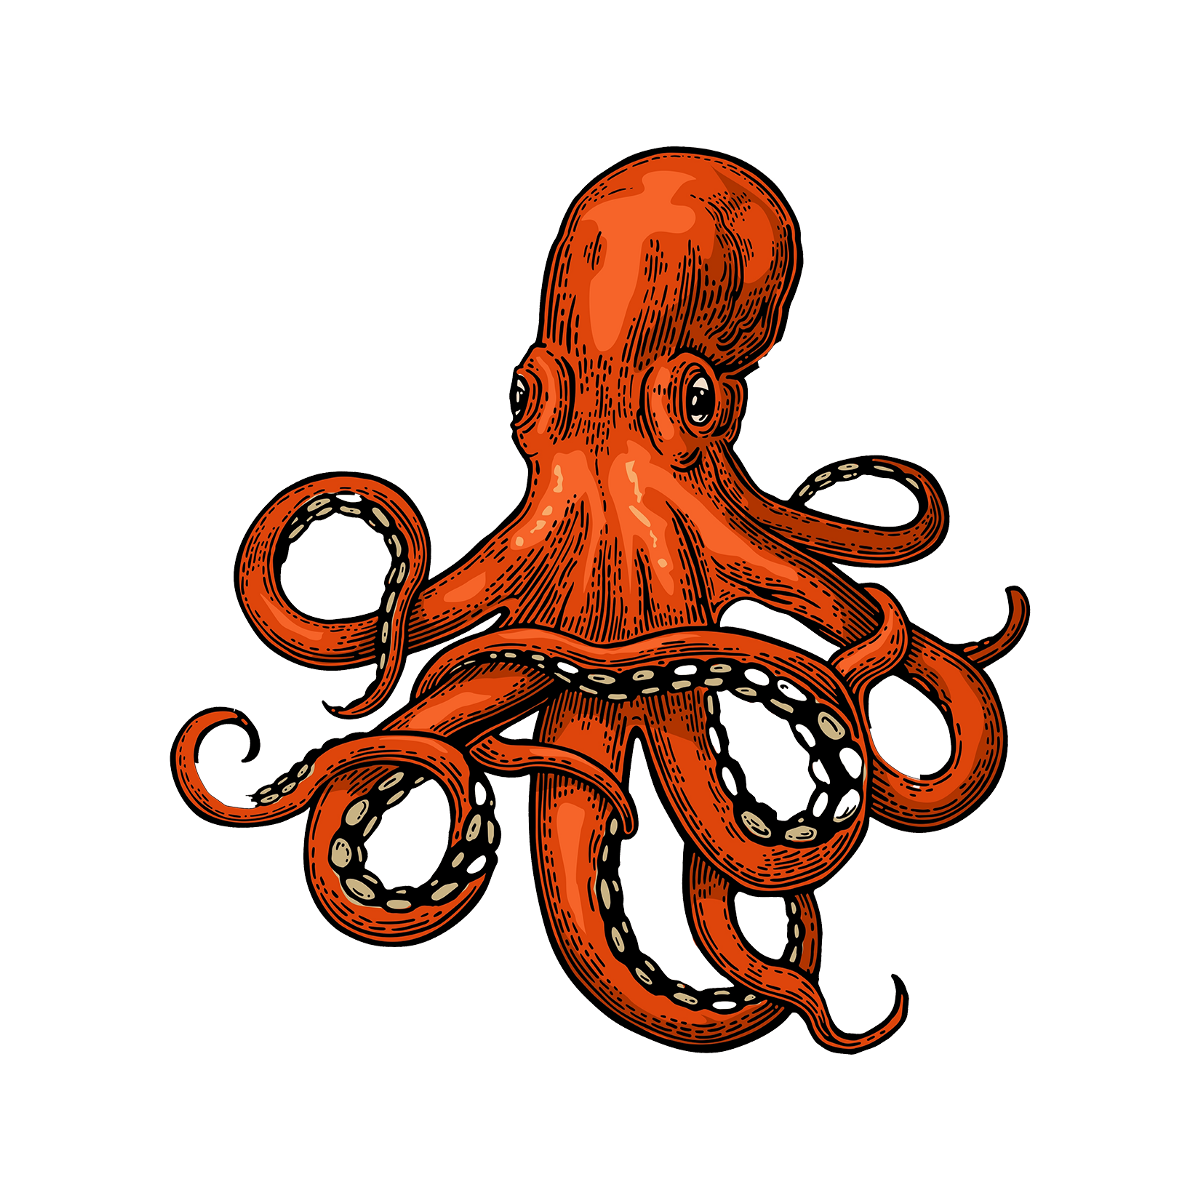 Squid drawing png. Octopus transprent free download